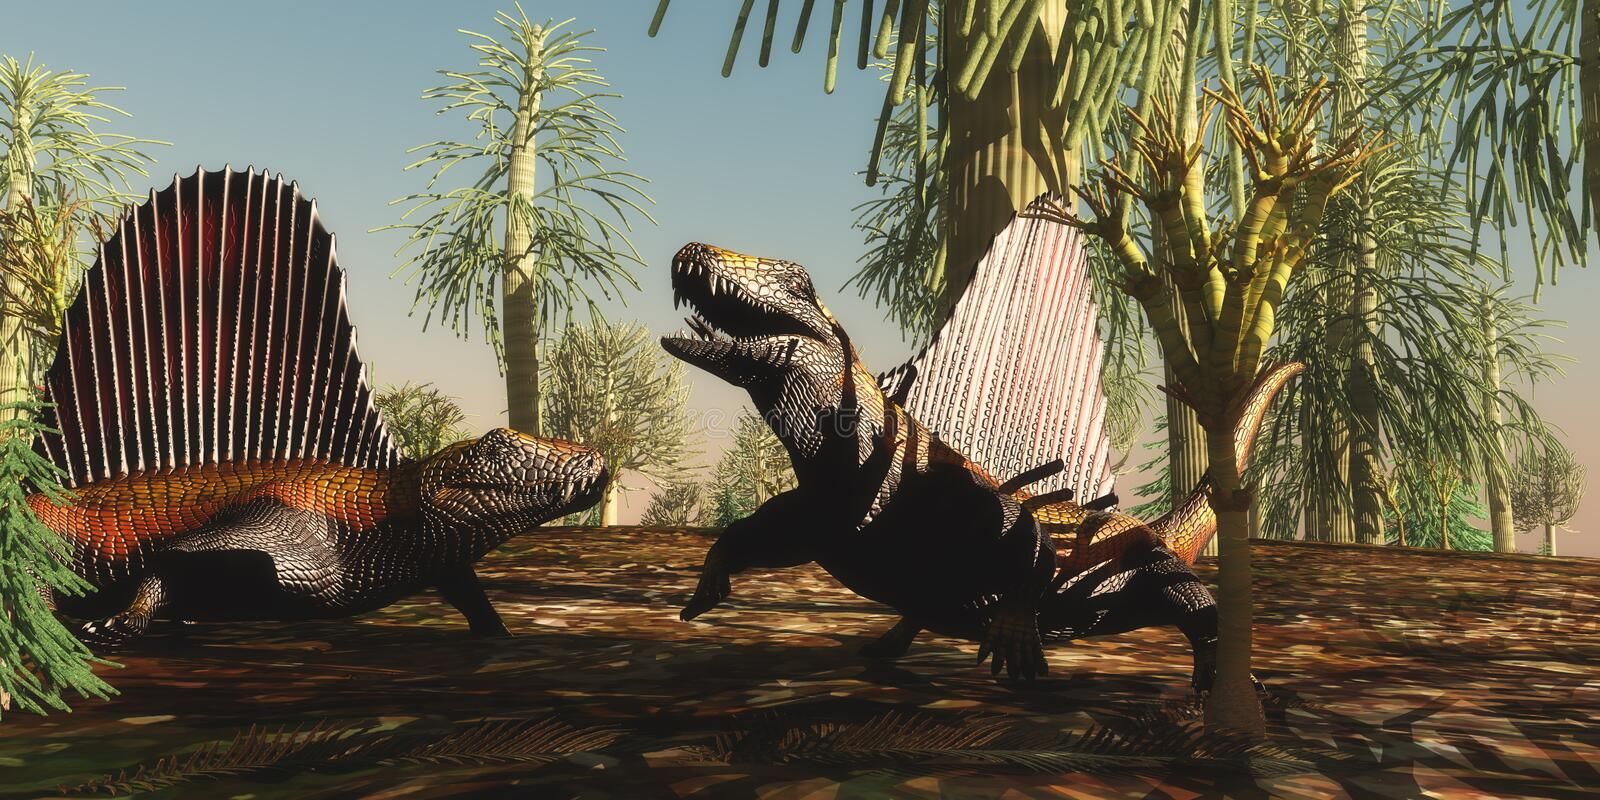 Dimetrodon Permian Reptiles. Dimetrodon reptiles have a territorial dispute over which animal is stronger and braver in the Permian Age vector illustration